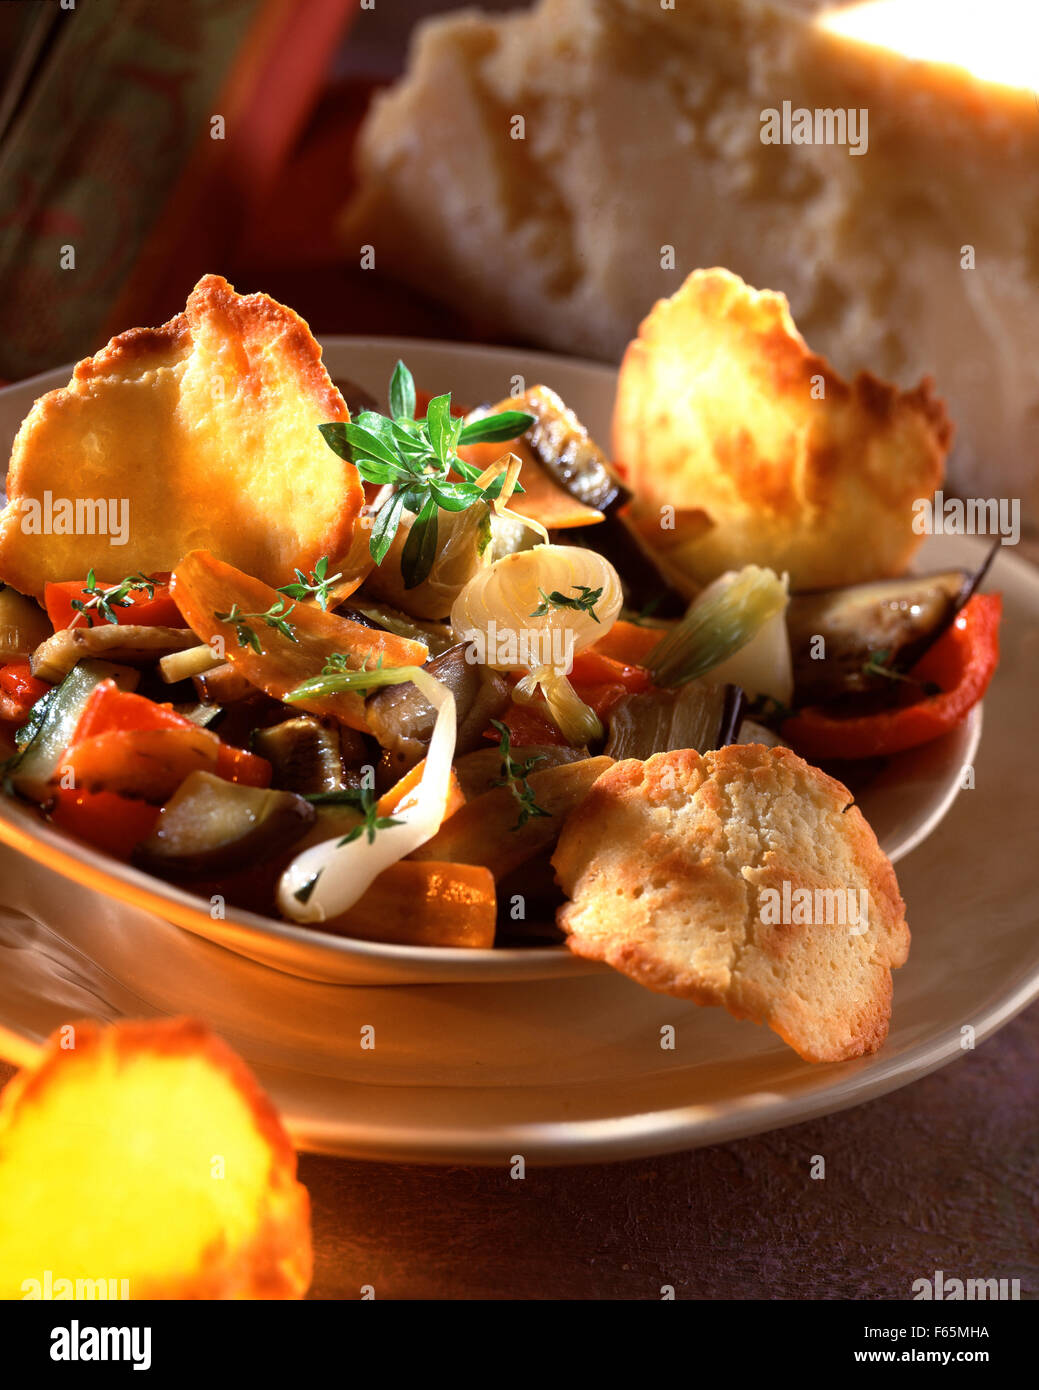 Stewed vegetables with parmesan tuile biscuits Stock Photo